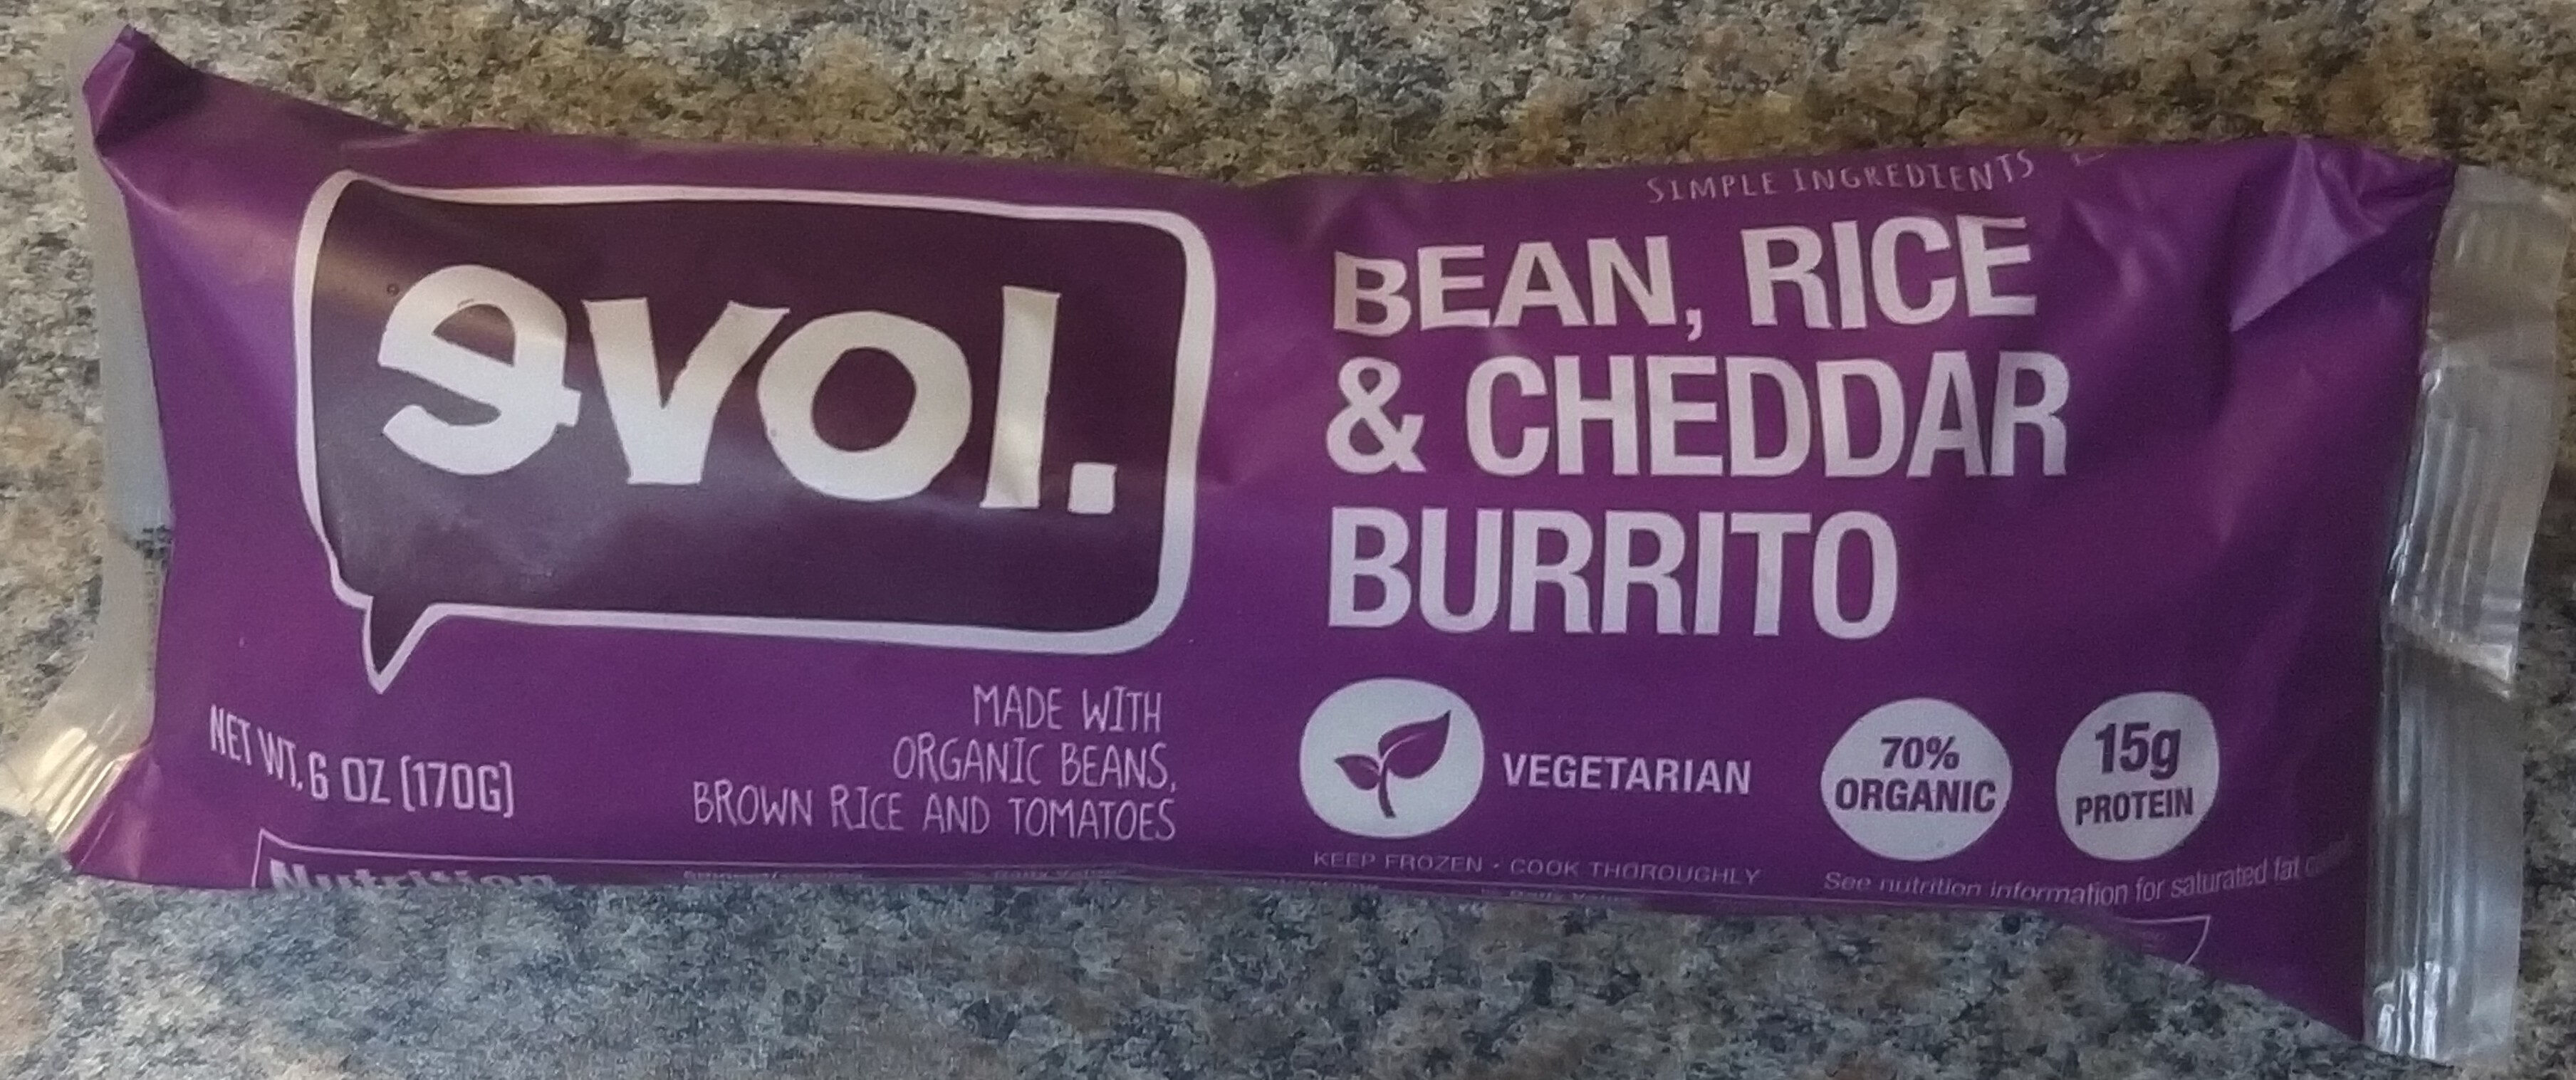 Bean, Rice & Cheddar Burrito - Product - en